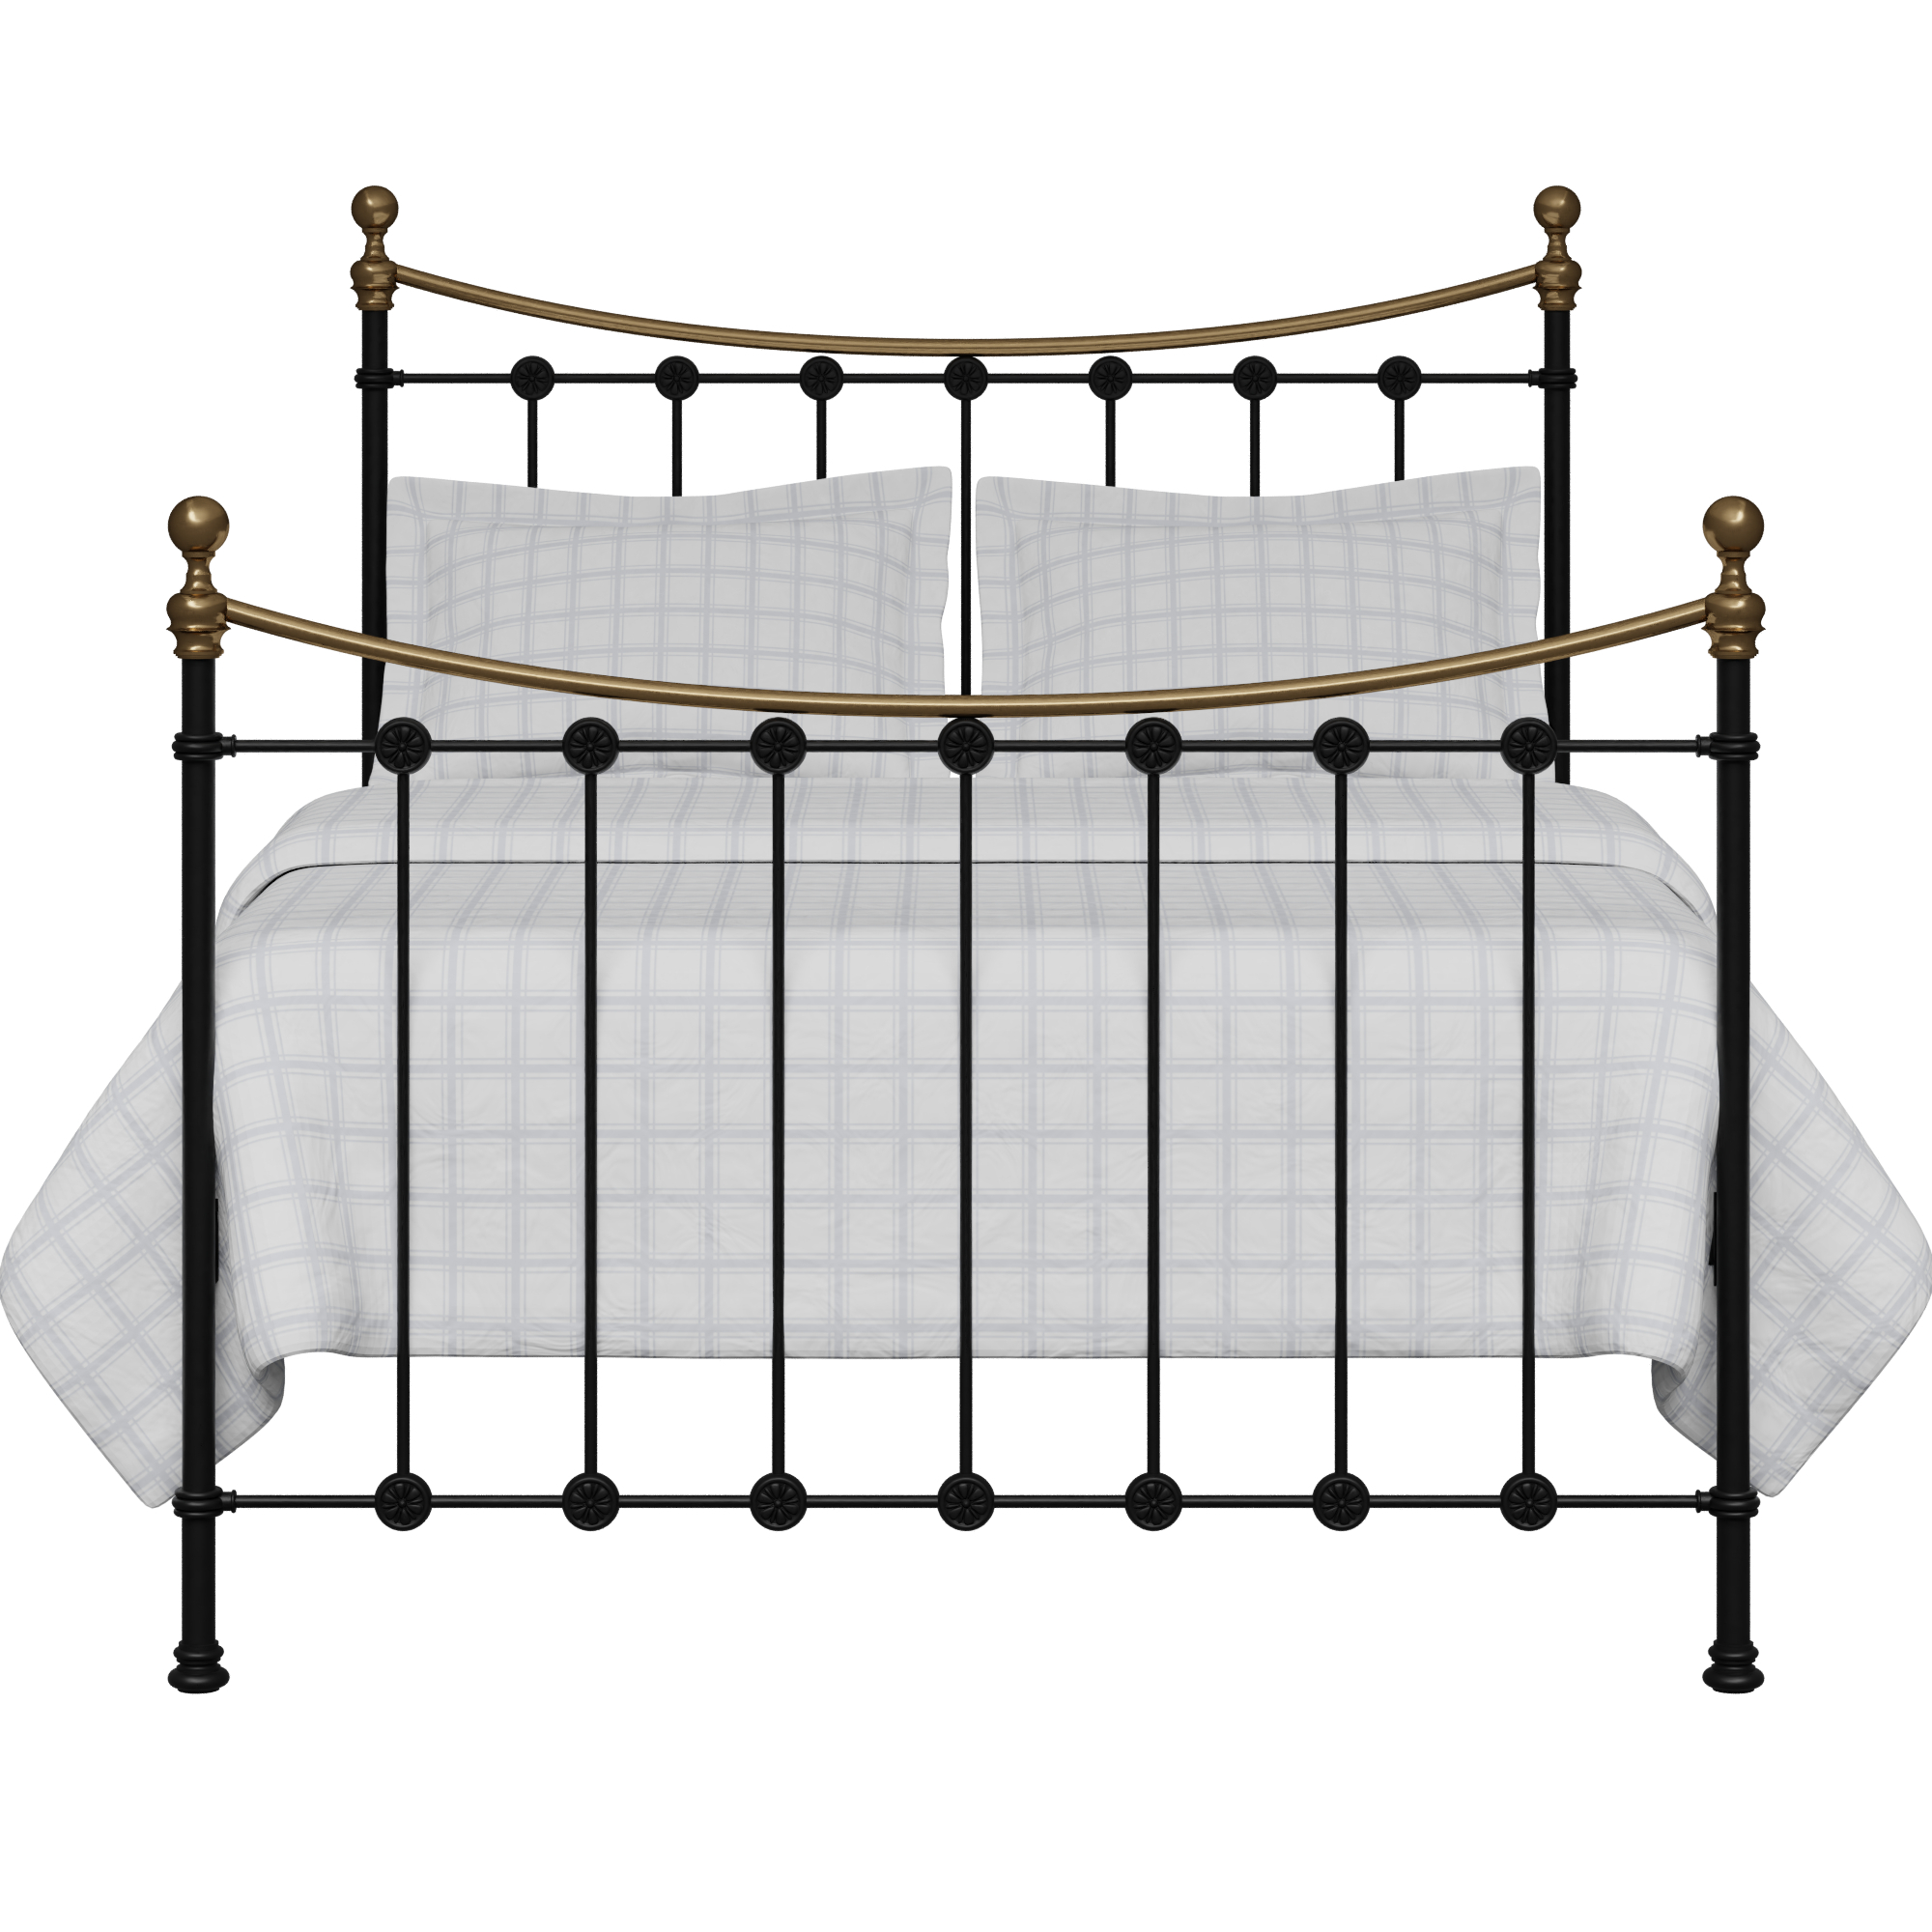 Carrick iron/metal bed in black